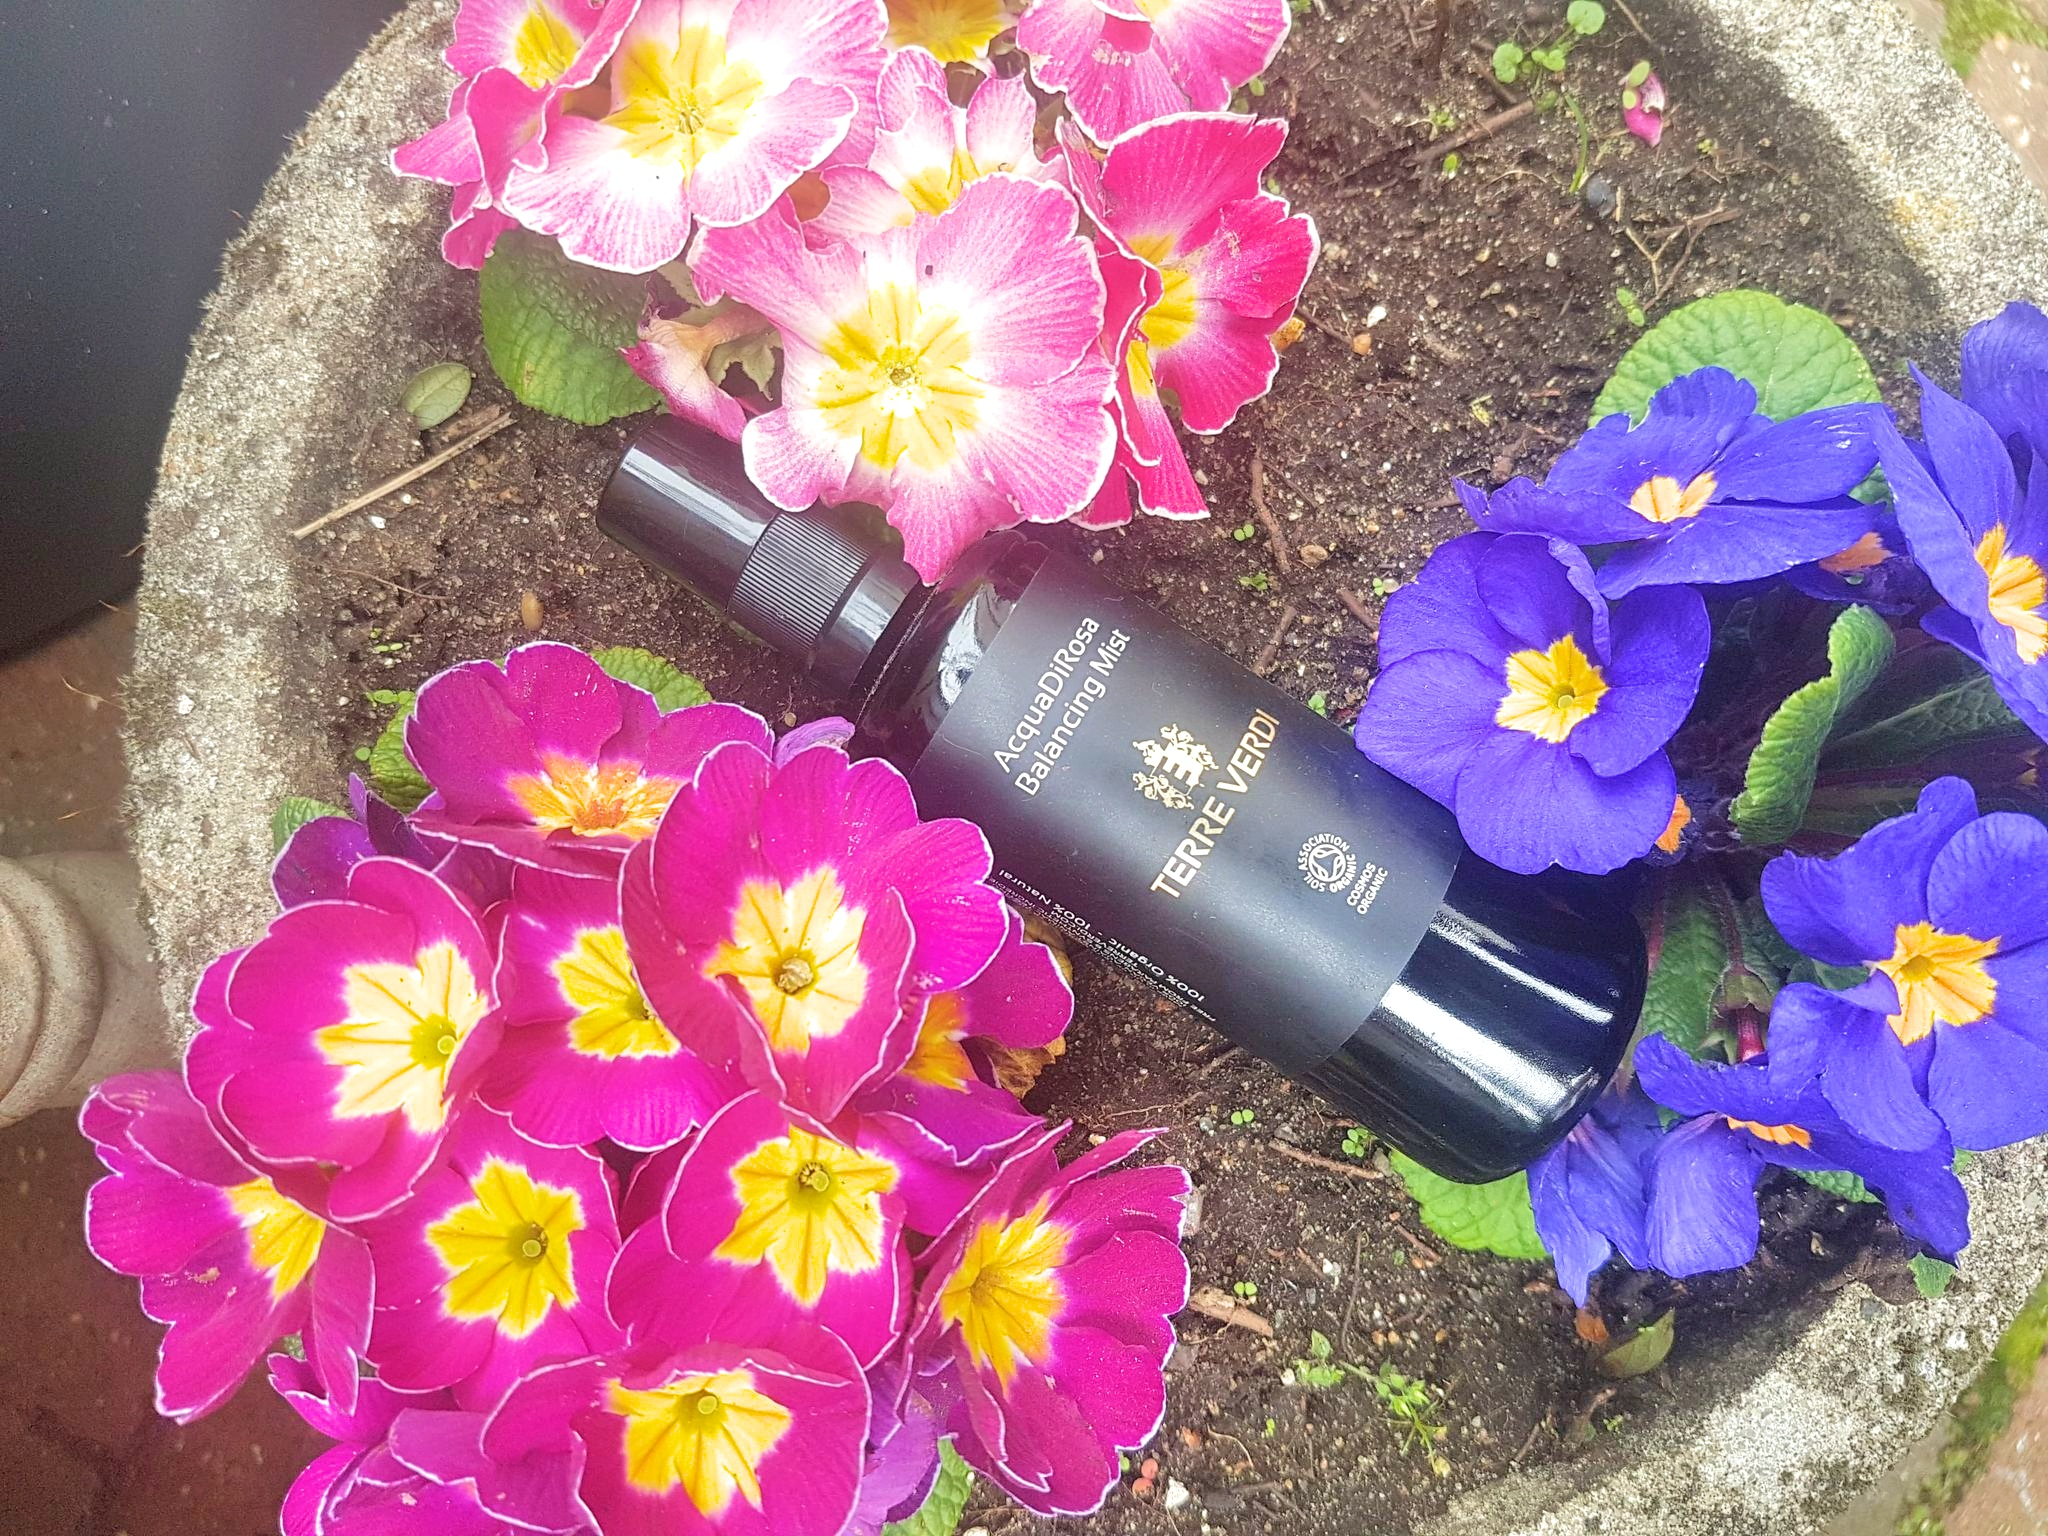 Terre Verdi AcquaDiRosa Balancing Mist in a mix of purple and pink primrose flowers